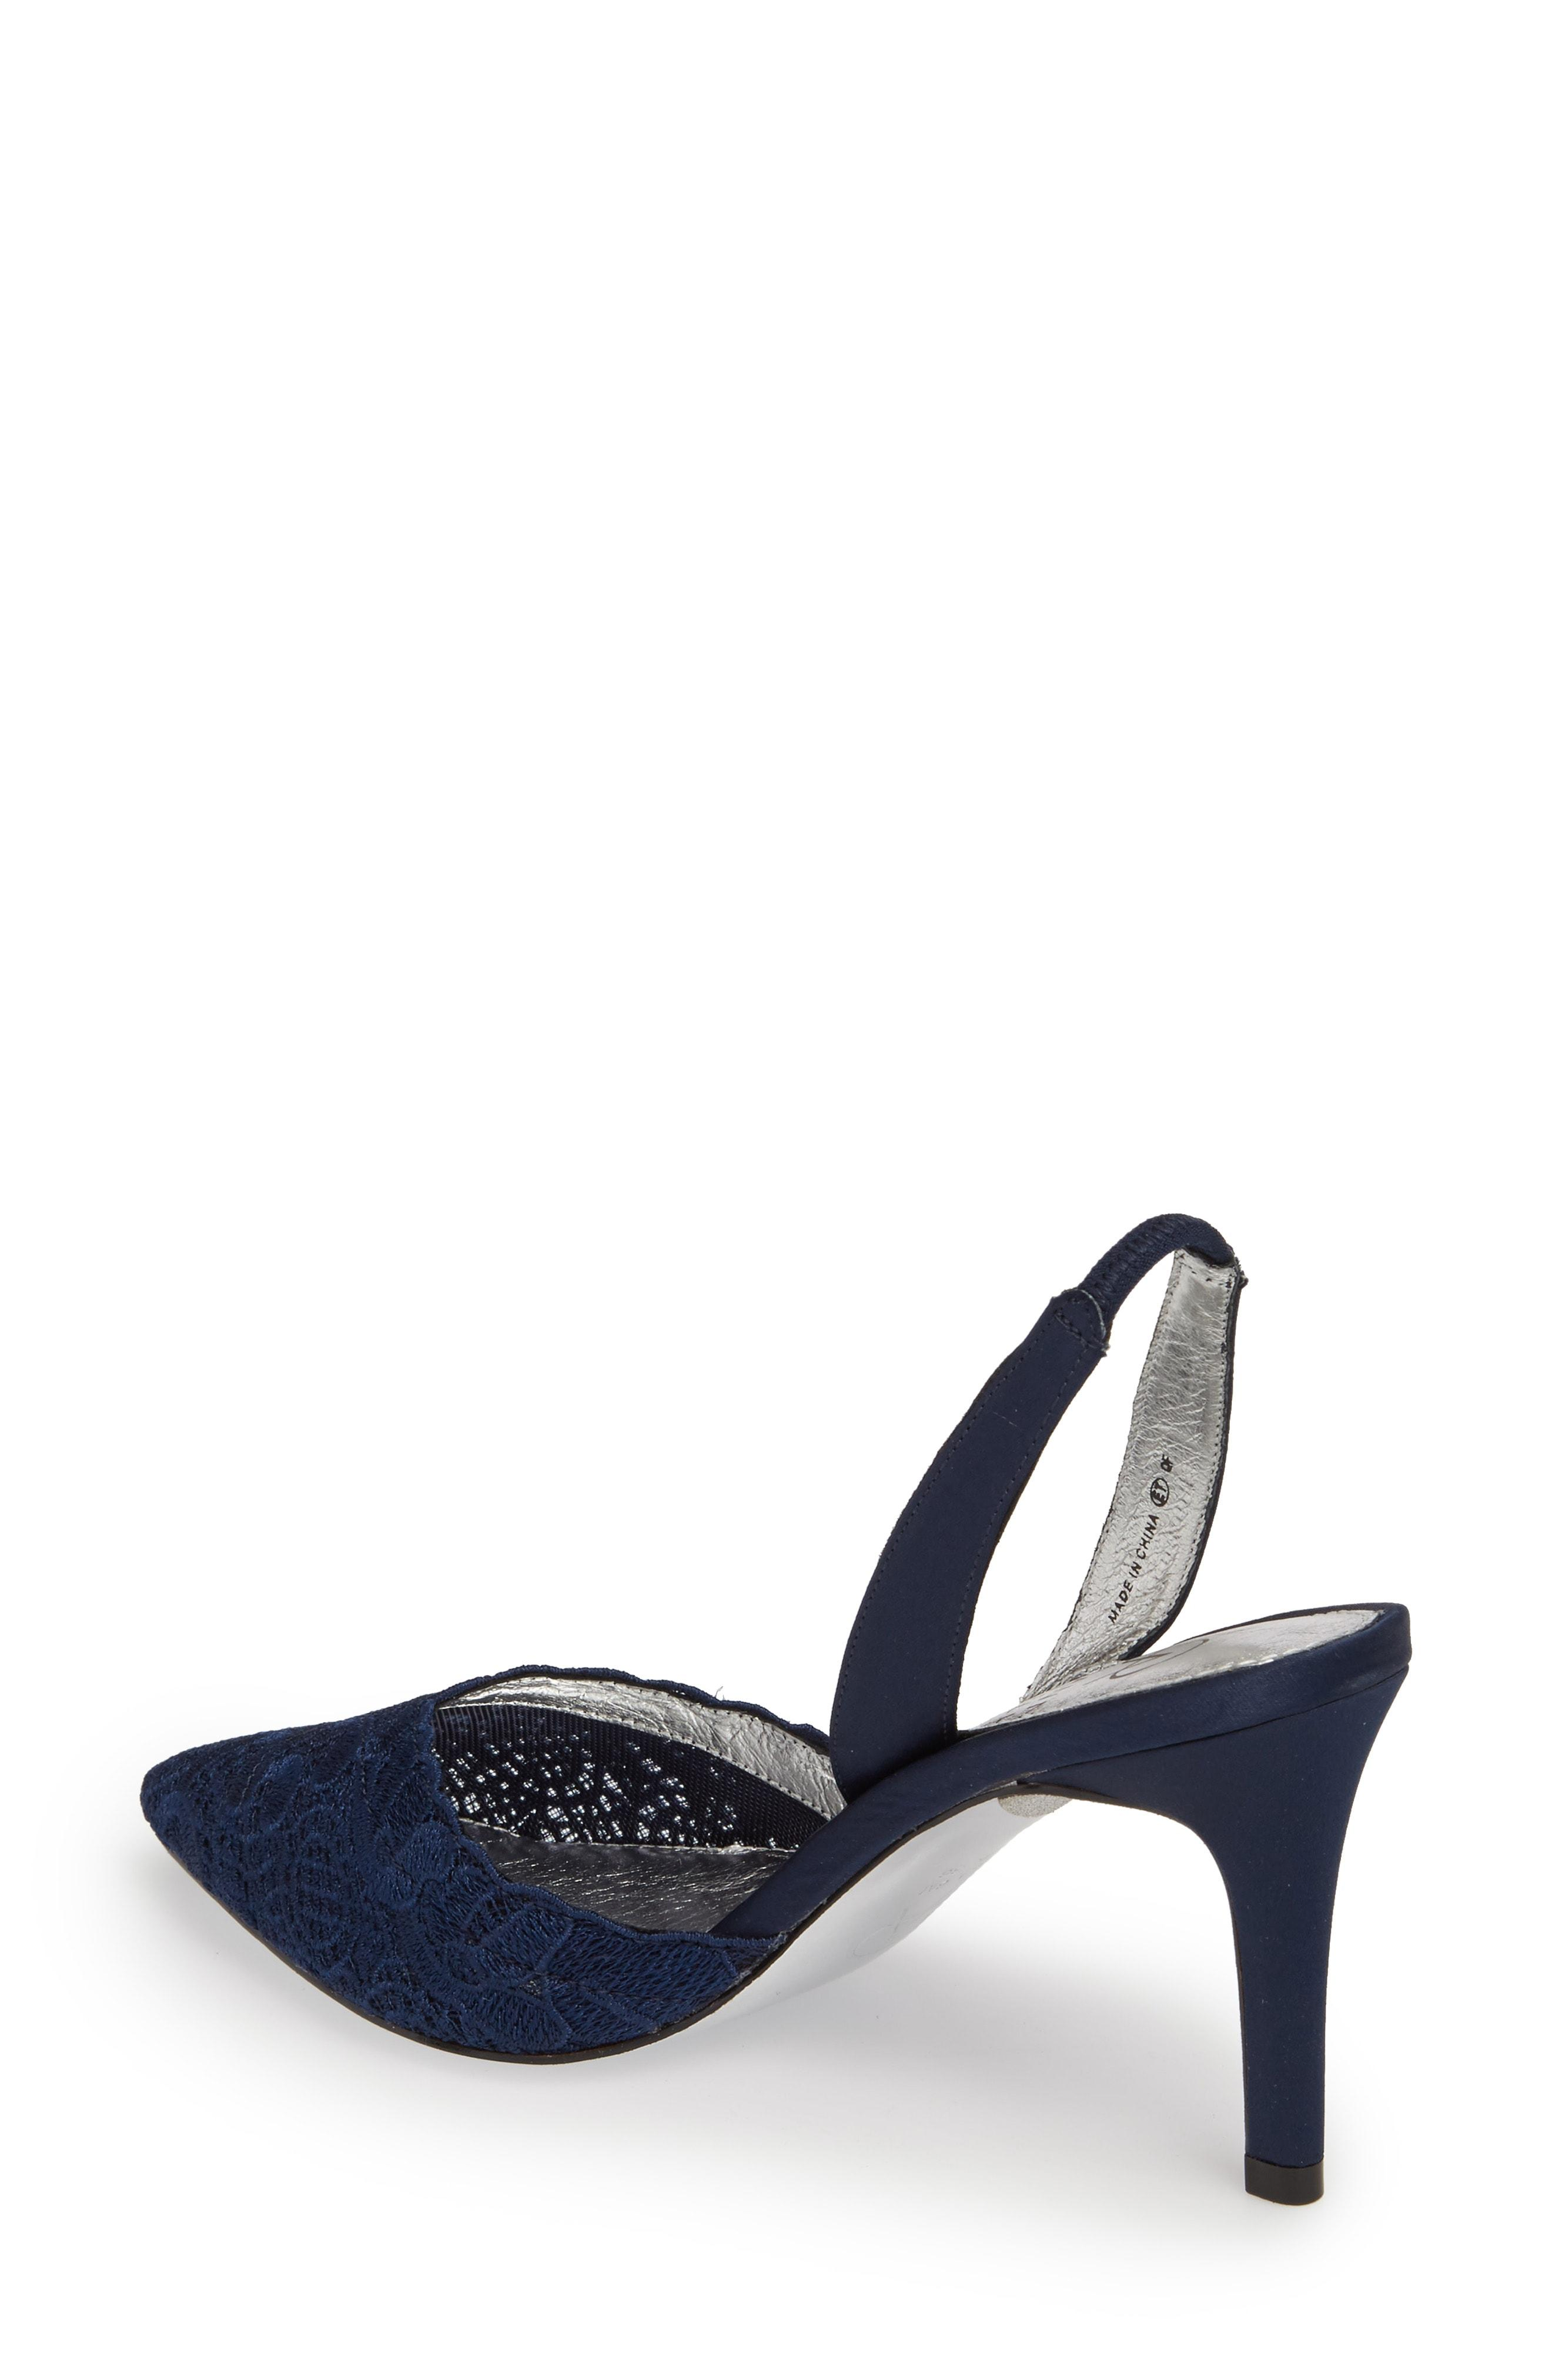 9123a338248 Adrianna Papell Hallie Slingback Pump In Navy Attalie Lace Fabric ...